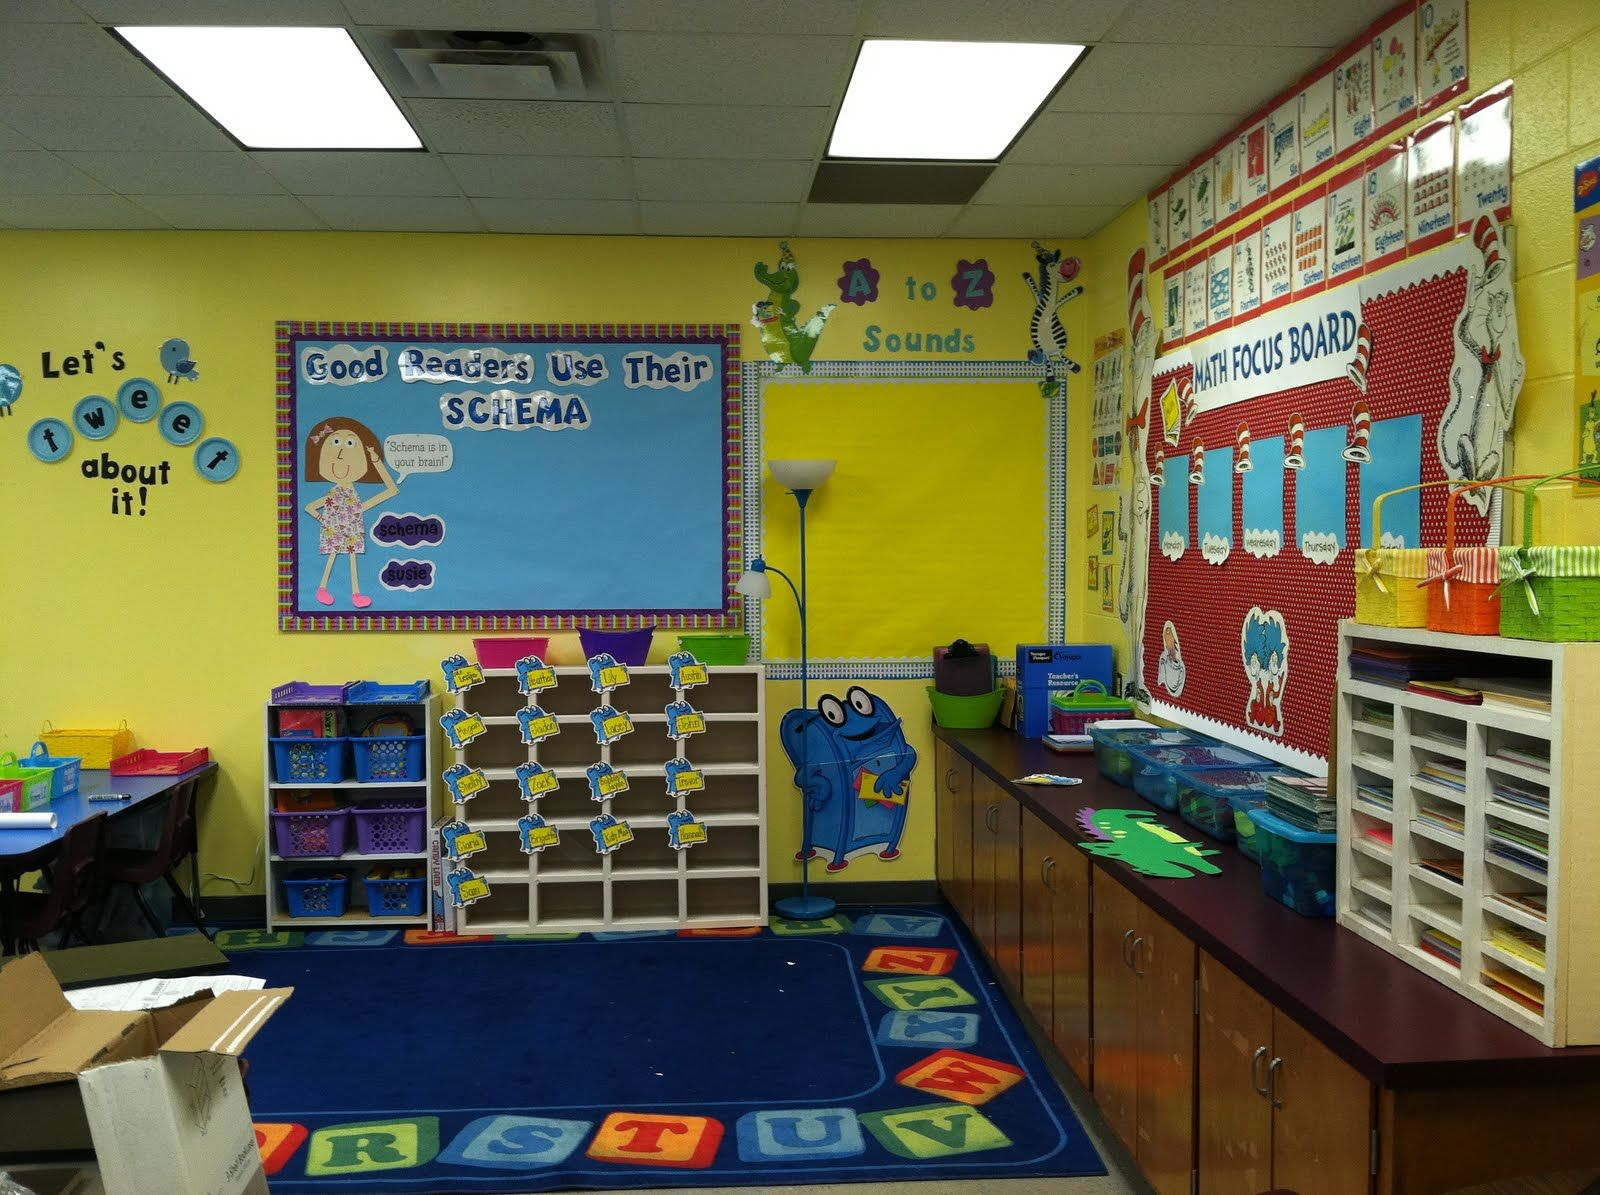 Classroom Design Ideas motivating classroom tours Classroom Decorating Themes Nice Design With Room Decorating Ideas For On Uncategorized